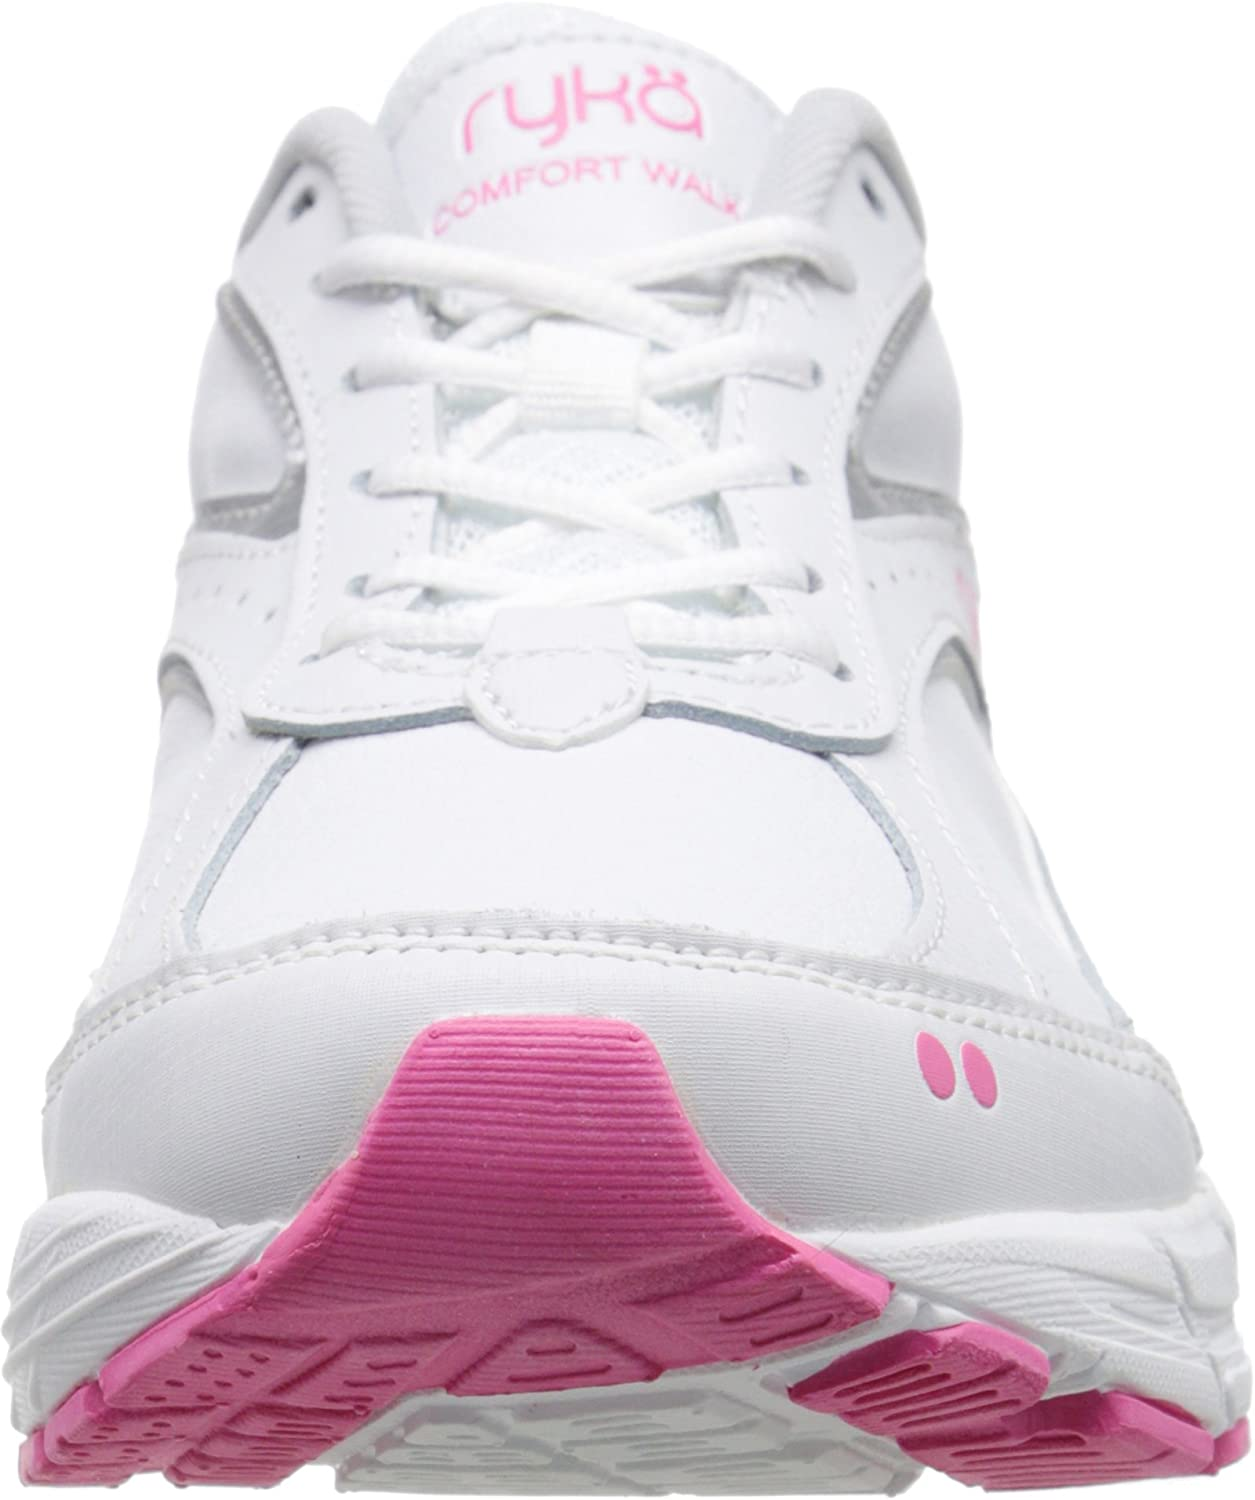 RYKA Womens Mens Comfort Walk Leather-W Comfort Walk Leather-w White Chrome Silver Hot Pink